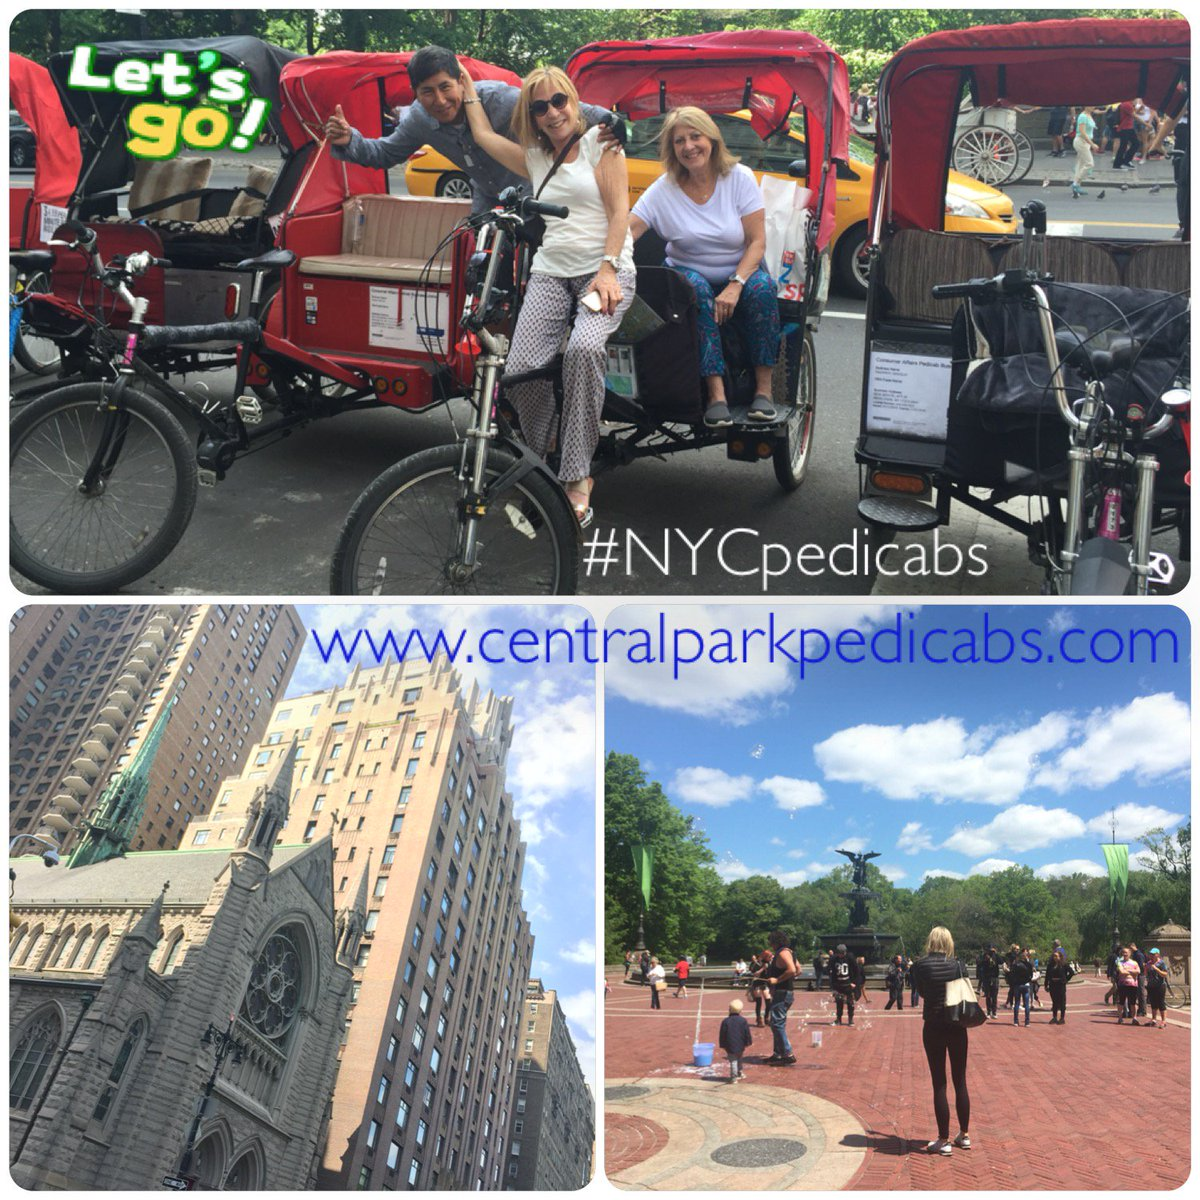 Central Park Pedicab Rickshaw Tours https://t.co/IKxLJu5I1I #centralparkpedicabs #cent ...